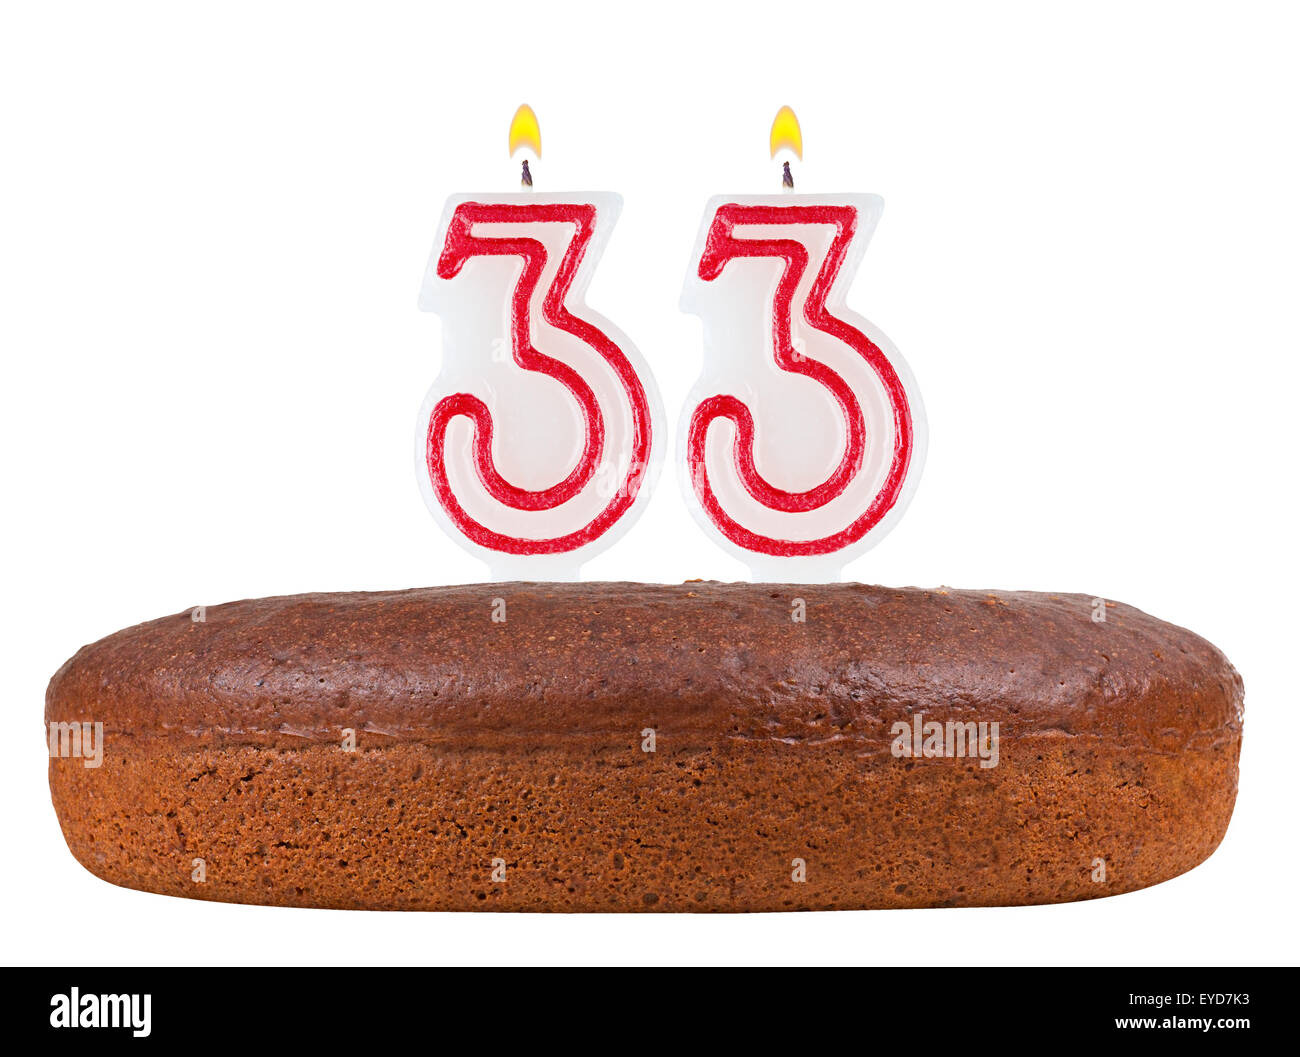 Birthday Cake With Candles Number 33 Isolated On White Background